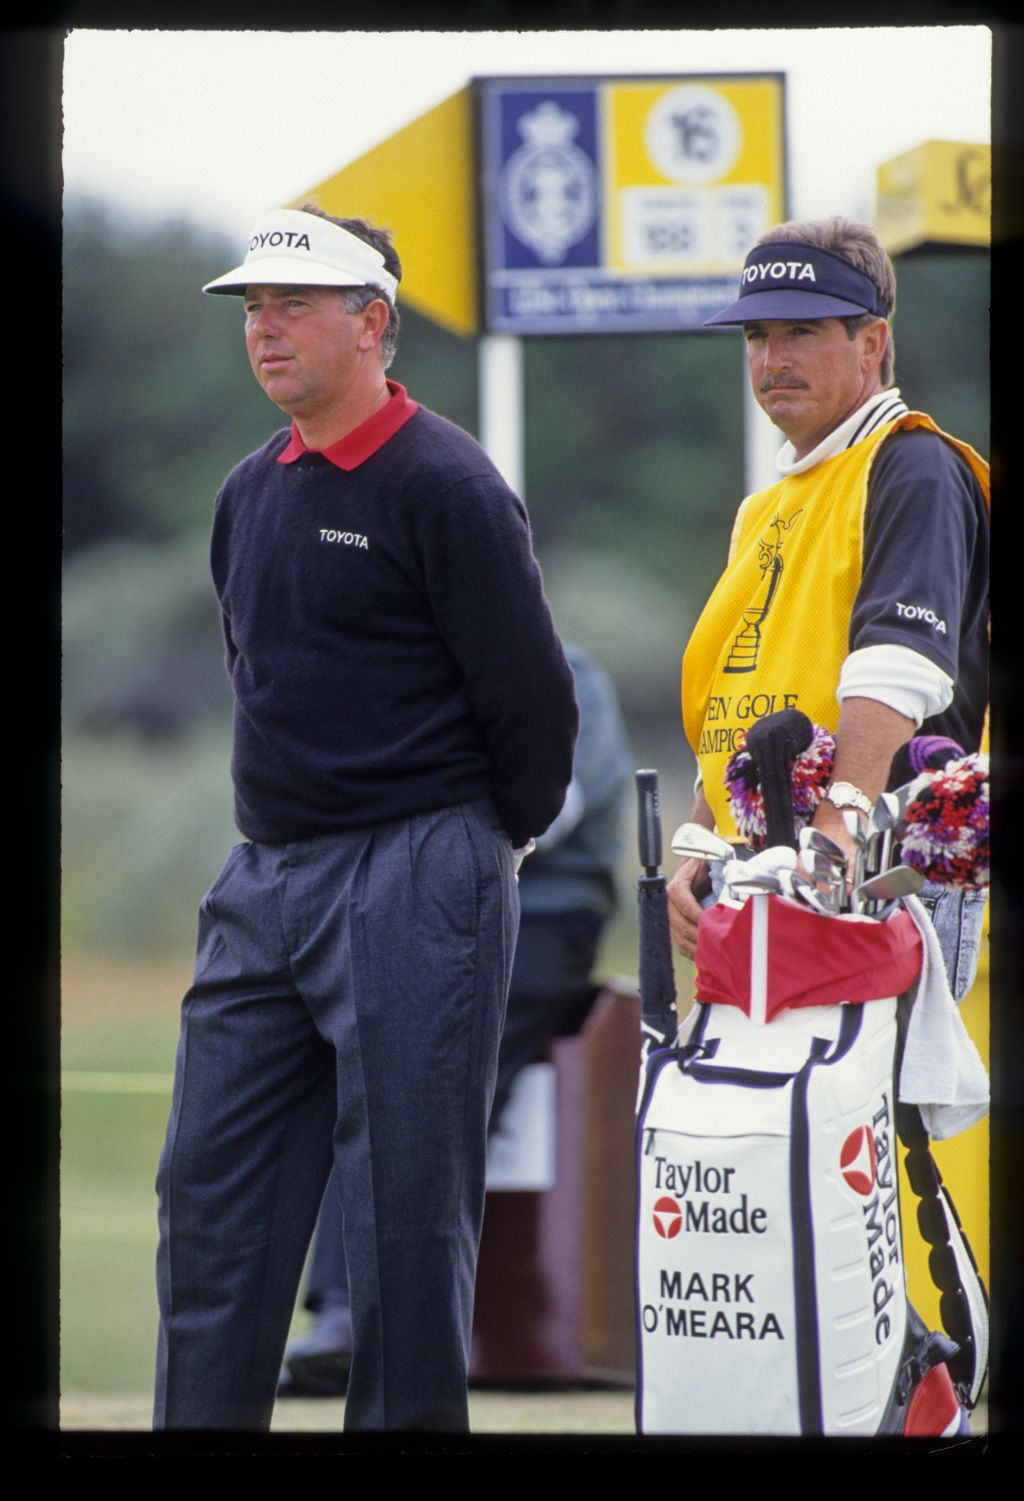 Mark O'Meara and his caddie on the tee during the 1992 Open Championship